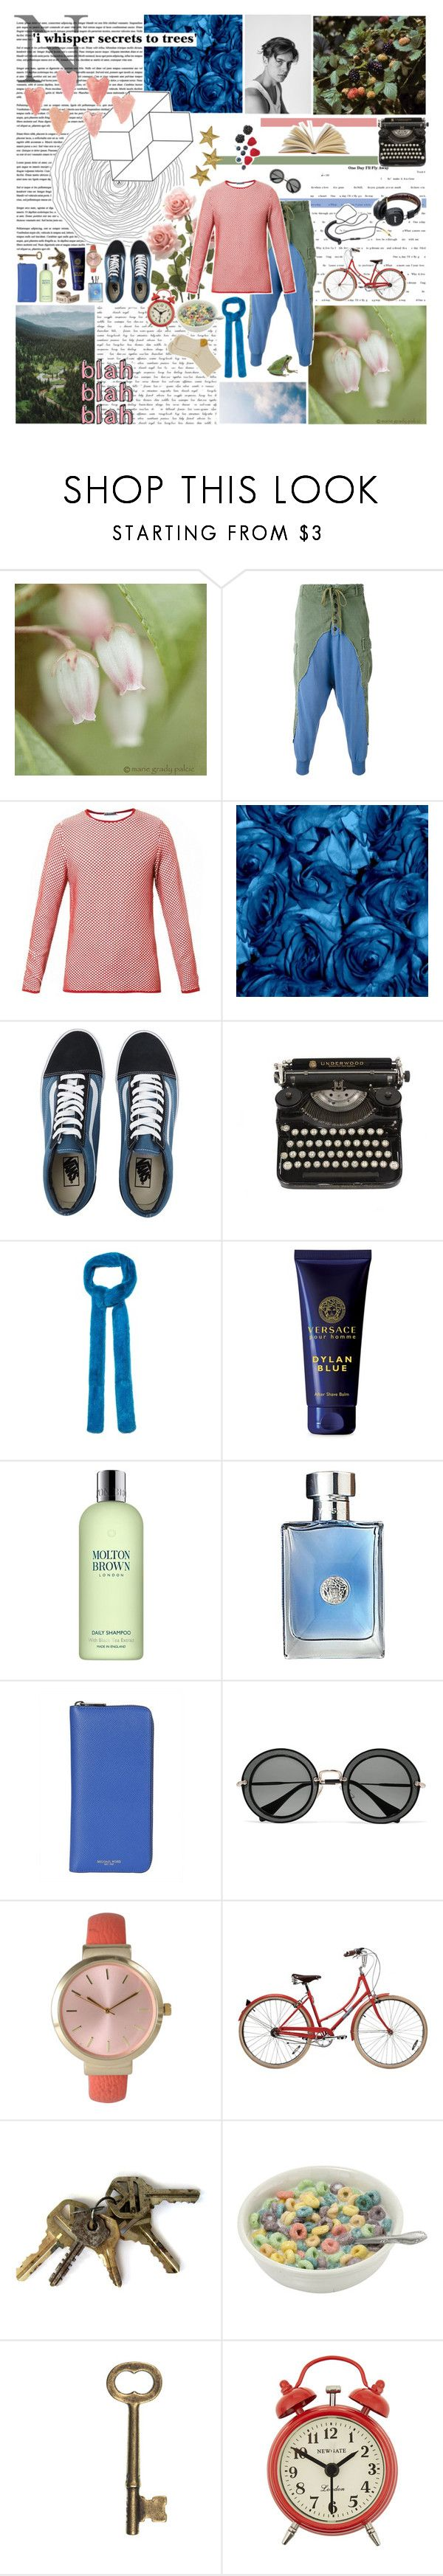 """""""we could be future friends (+ description)"""" by whimsical-angst ❤ liked on Polyvore featuring Greg Lauren, J.W. Anderson, Vans, Gucci, Versace, Molton Brown, Michael Kors, Miu Miu, Olivia Pratt and Newgate"""